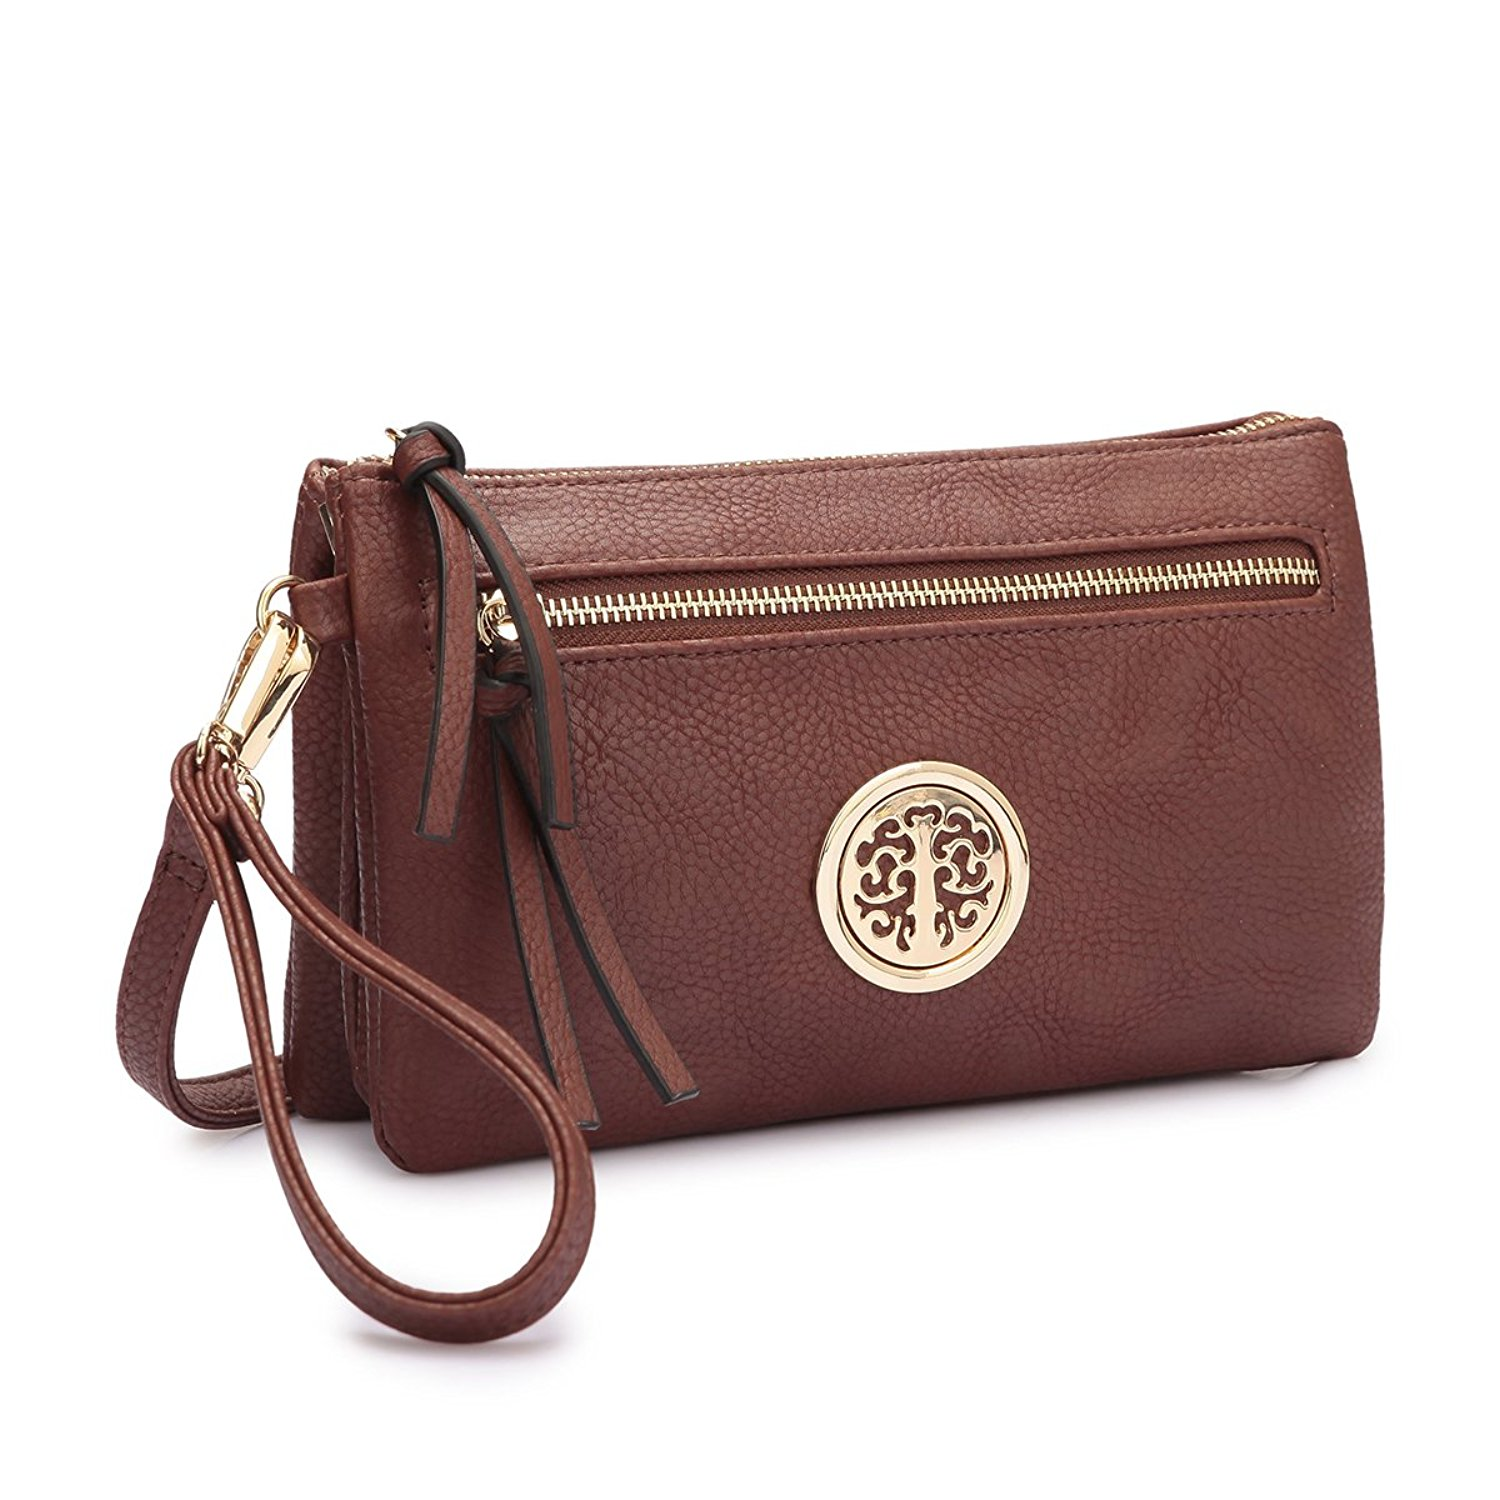 MMK Collection Fashion Crossbody Bag ~Messenger Purse~Crossbody Bag for Women~Designer Fashion Wristlet Wallet Multi Pocket Clutch Purse (MA-18-7217 Brown)